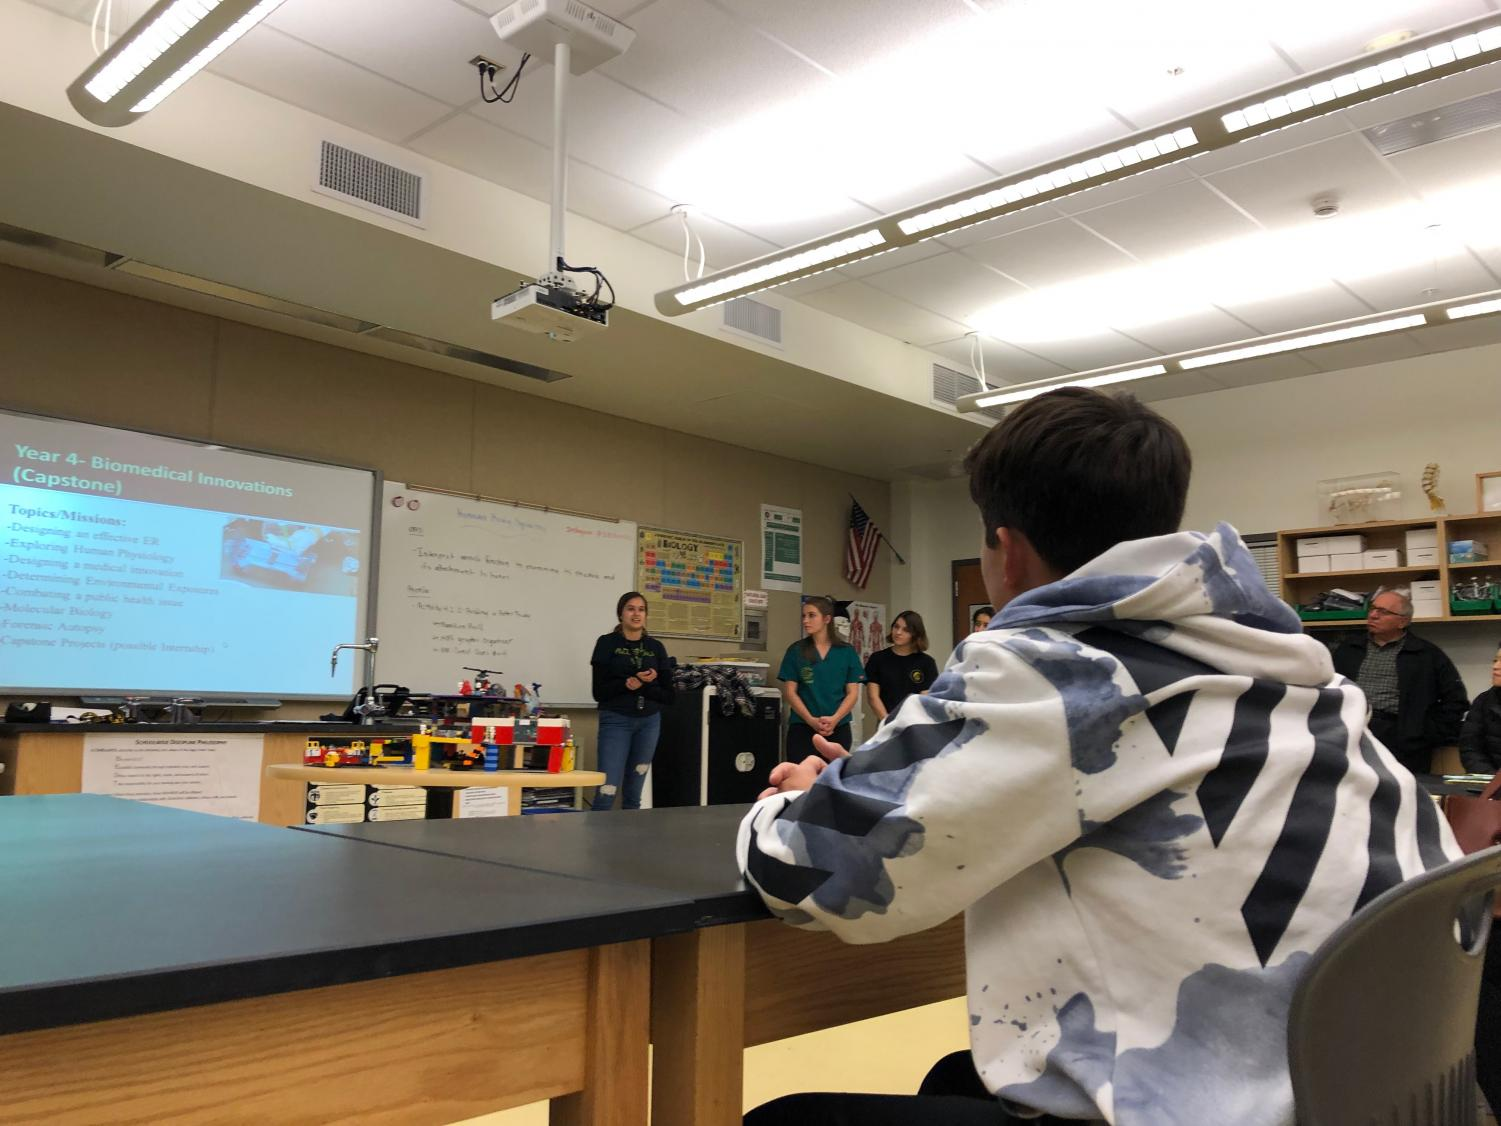 Fourth+year+Biomed+students+describe+their+experience+and+the+attraction+of+the+class+to+prospective+students+and+parents+during+the+breakout+session+part+of+the+Eighth+Grade+Showcase+Tuesday+night.+The+night+was+supplemented+with+many+senior+and+junior+volunteers+who+provided+their+student+views+on+all+the+opportunities+at+Sage+Creek.+